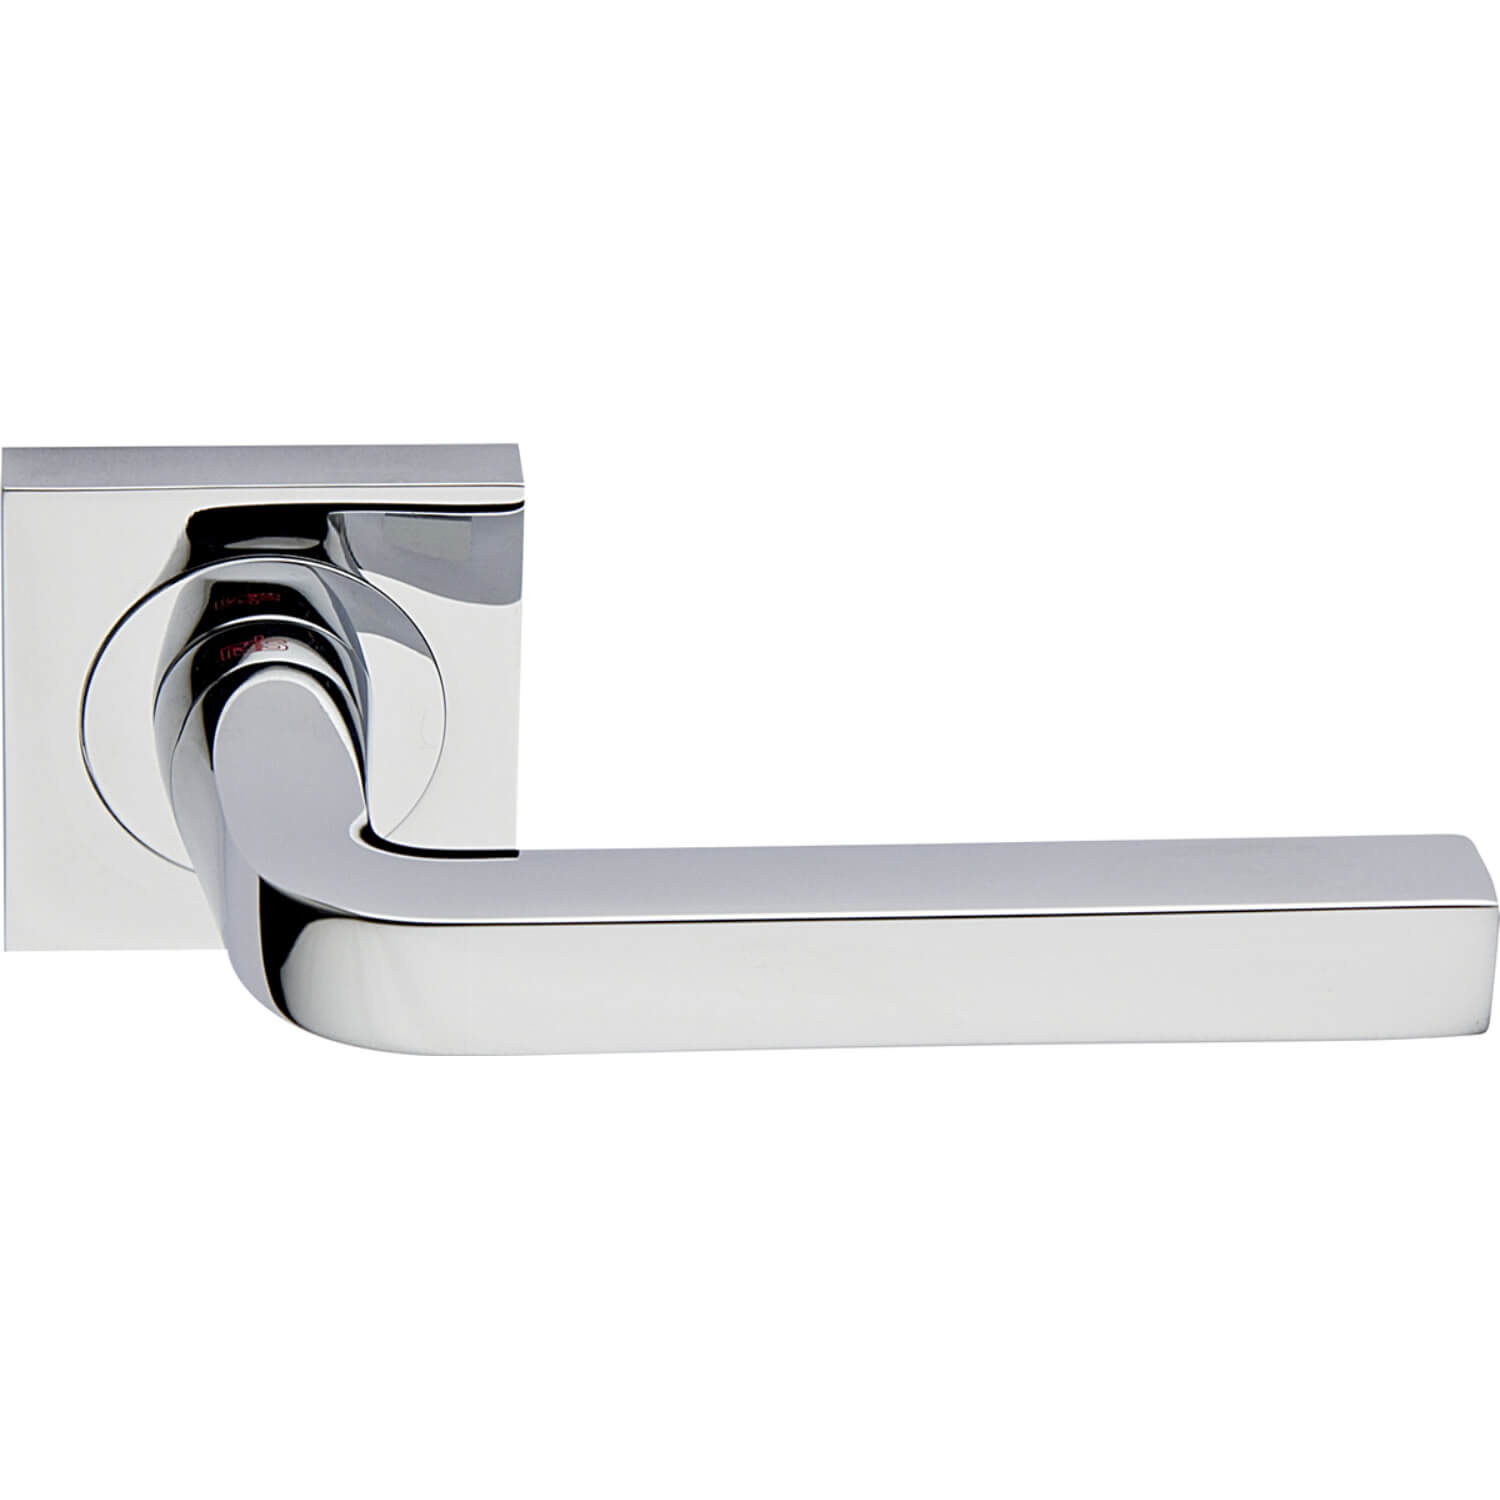 Door Handle Polished Chrome Interior Milano Square Chrome And Nickel Door Handles